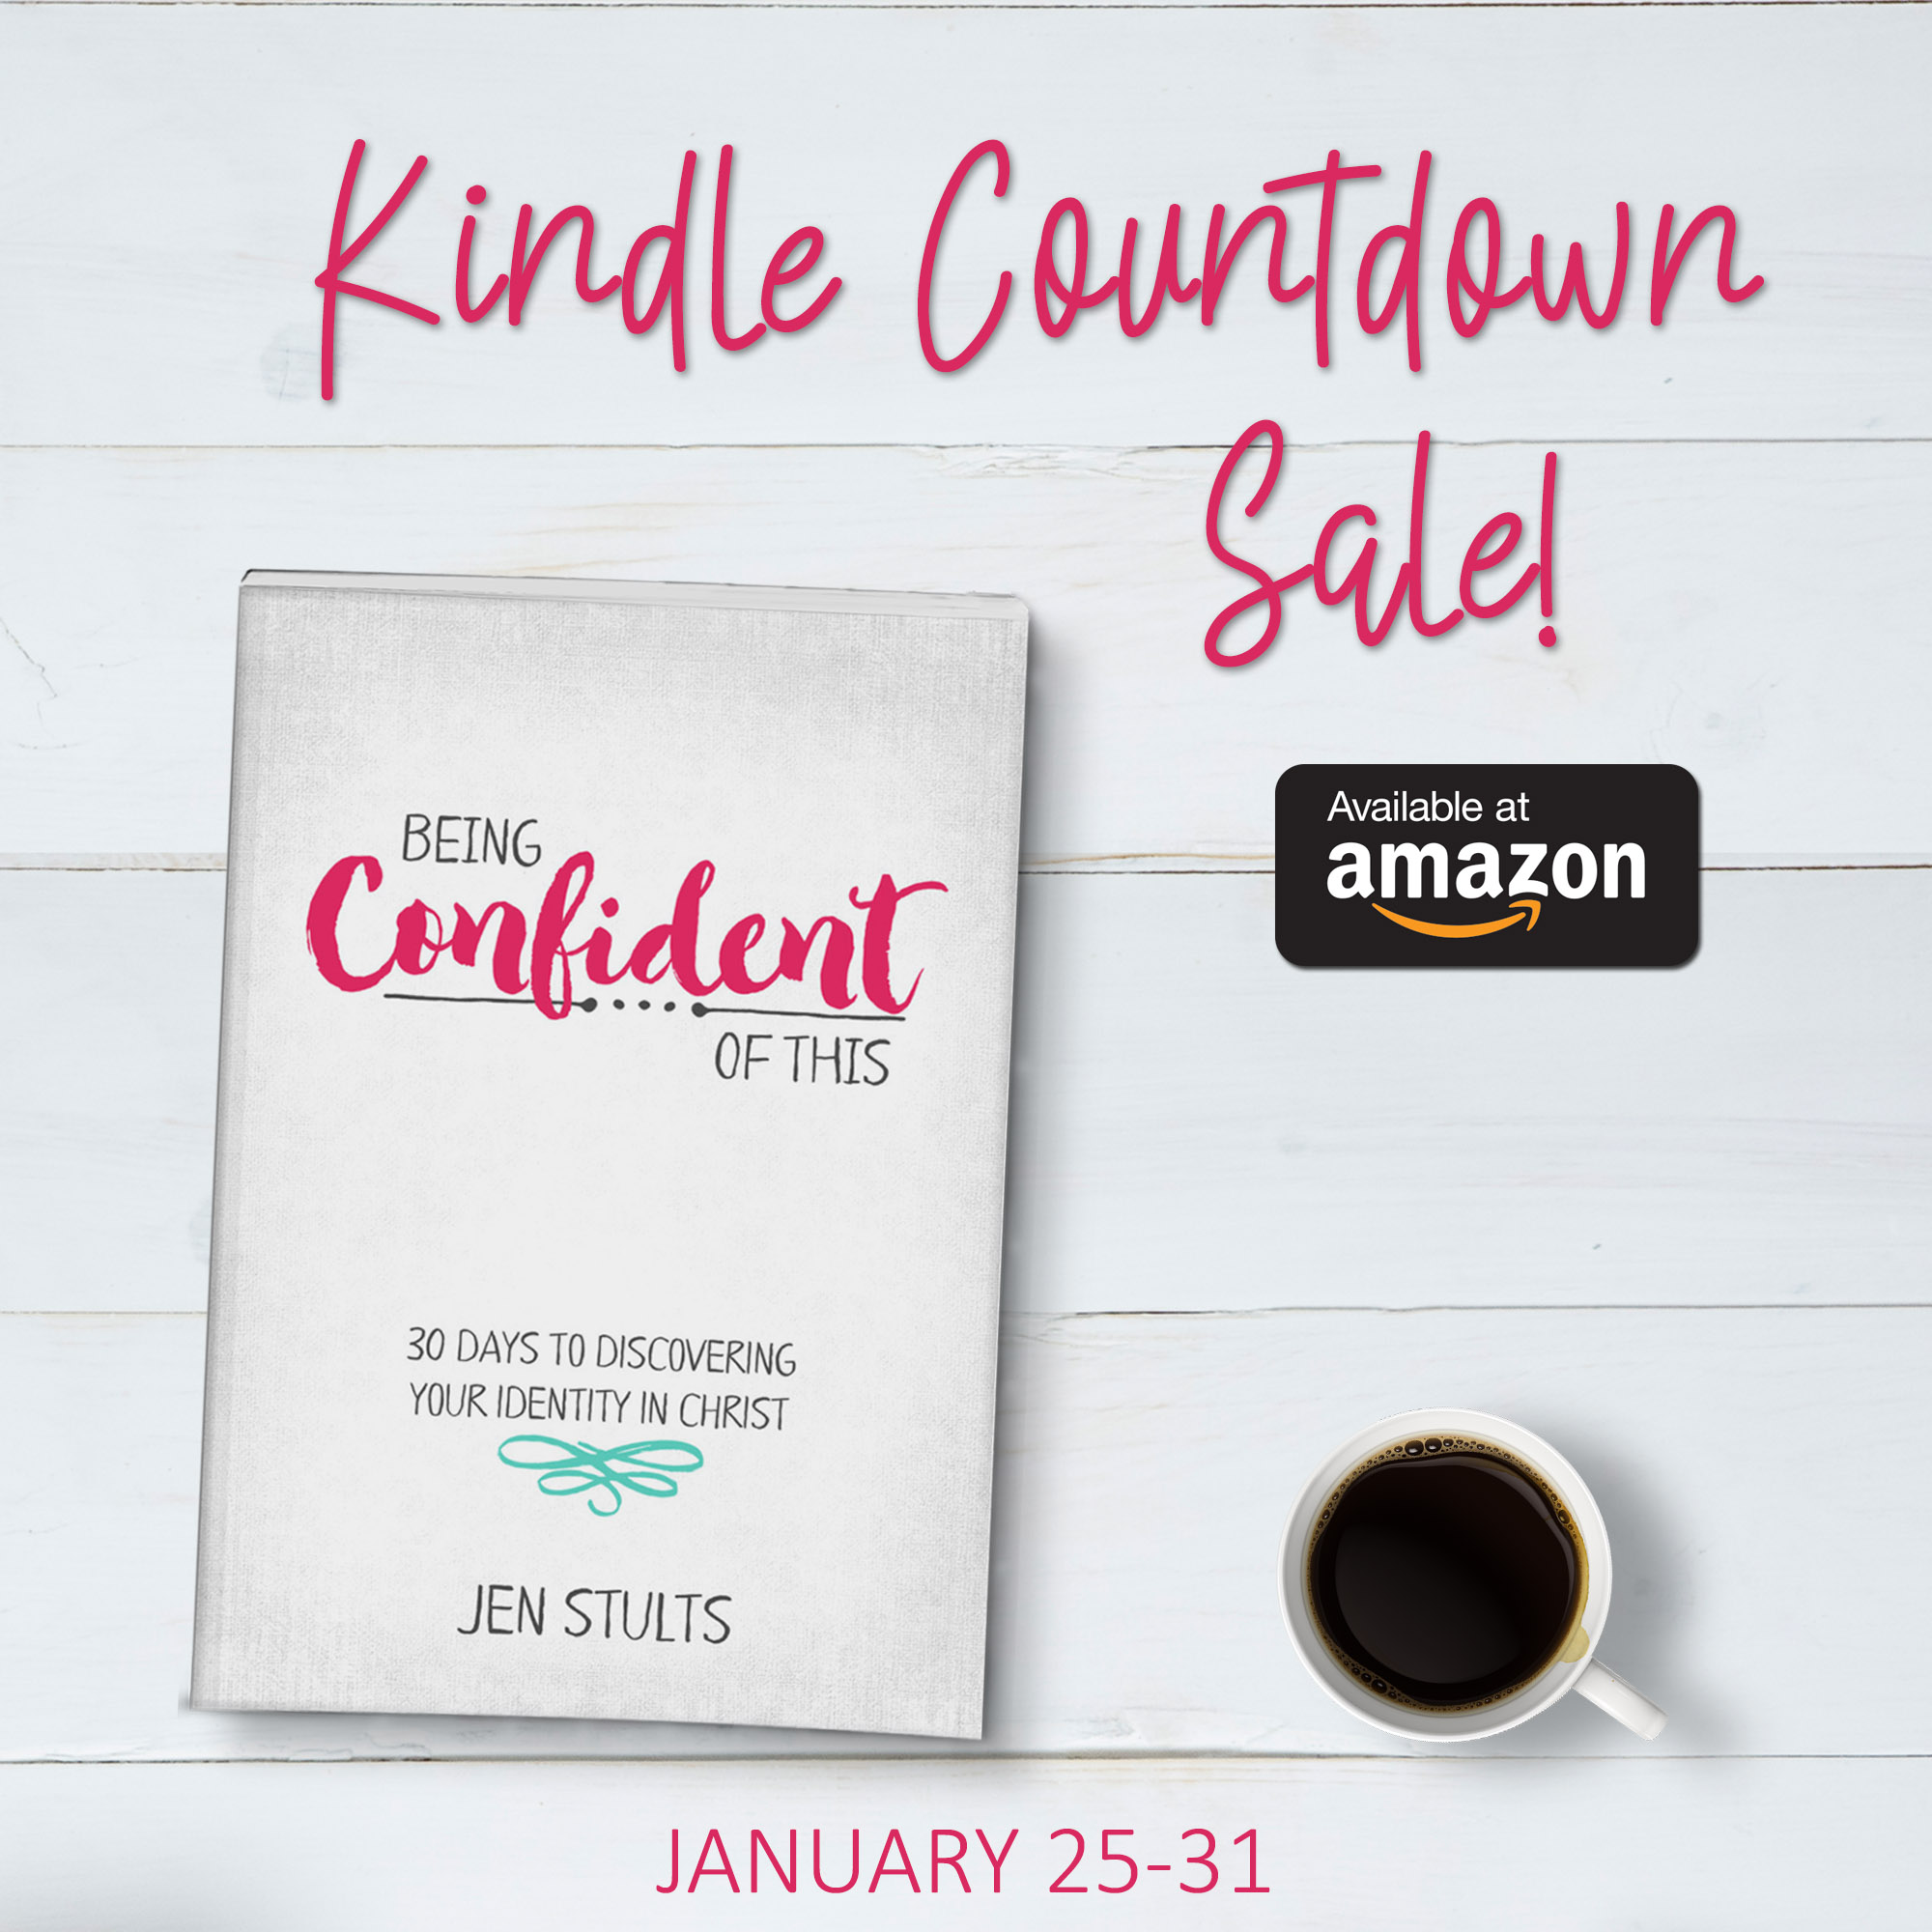 New devotional release from Jen Stults - Being Confident of This: 30 Days to Discovering Your Identity in Christ. This book is for every Christian woman who wants to walk in confident faith instead of struggling with doubt, fear, and insecurity! self-esteem | self-confidence | self-help | motivational | personal growth | spiritual growth | how to be more confident | Christian women | devotional | Bible study | identity in Christ | superwoman myth | being like Mary